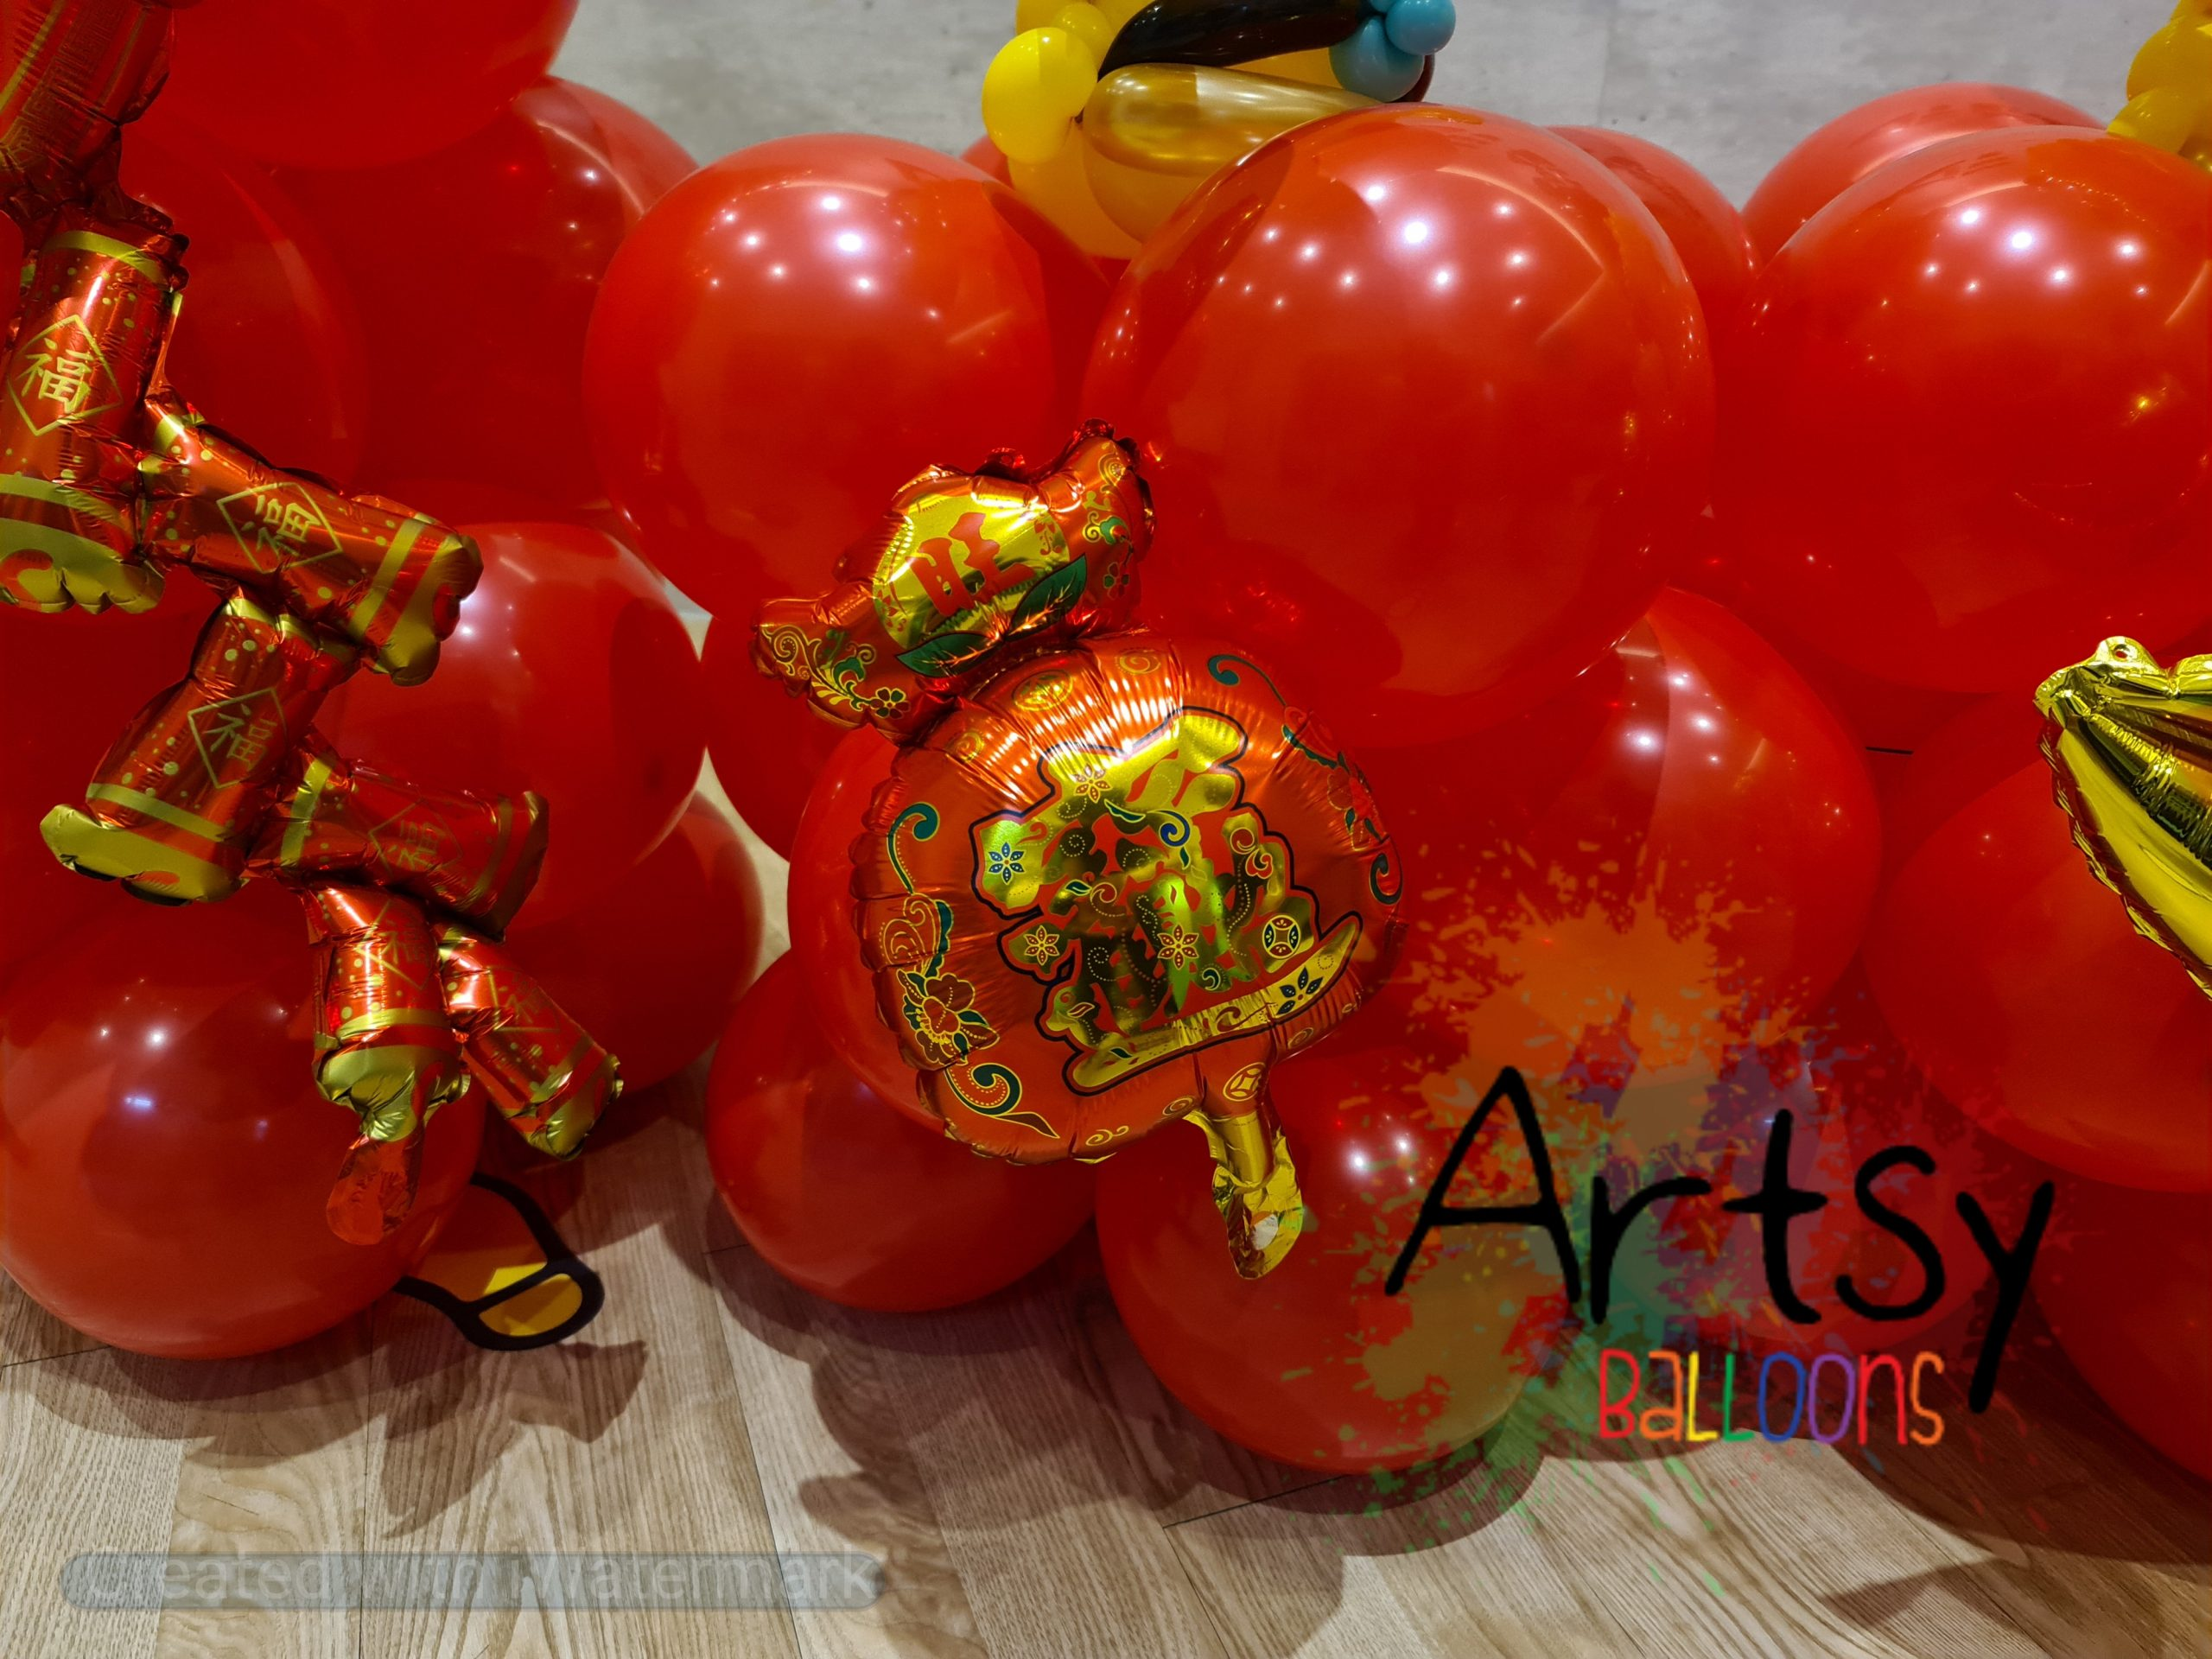 , Ox Chinese New Year Balloon Decorations, Singapore Balloon Decoration Services - Balloon Workshop and Balloon Sculpting